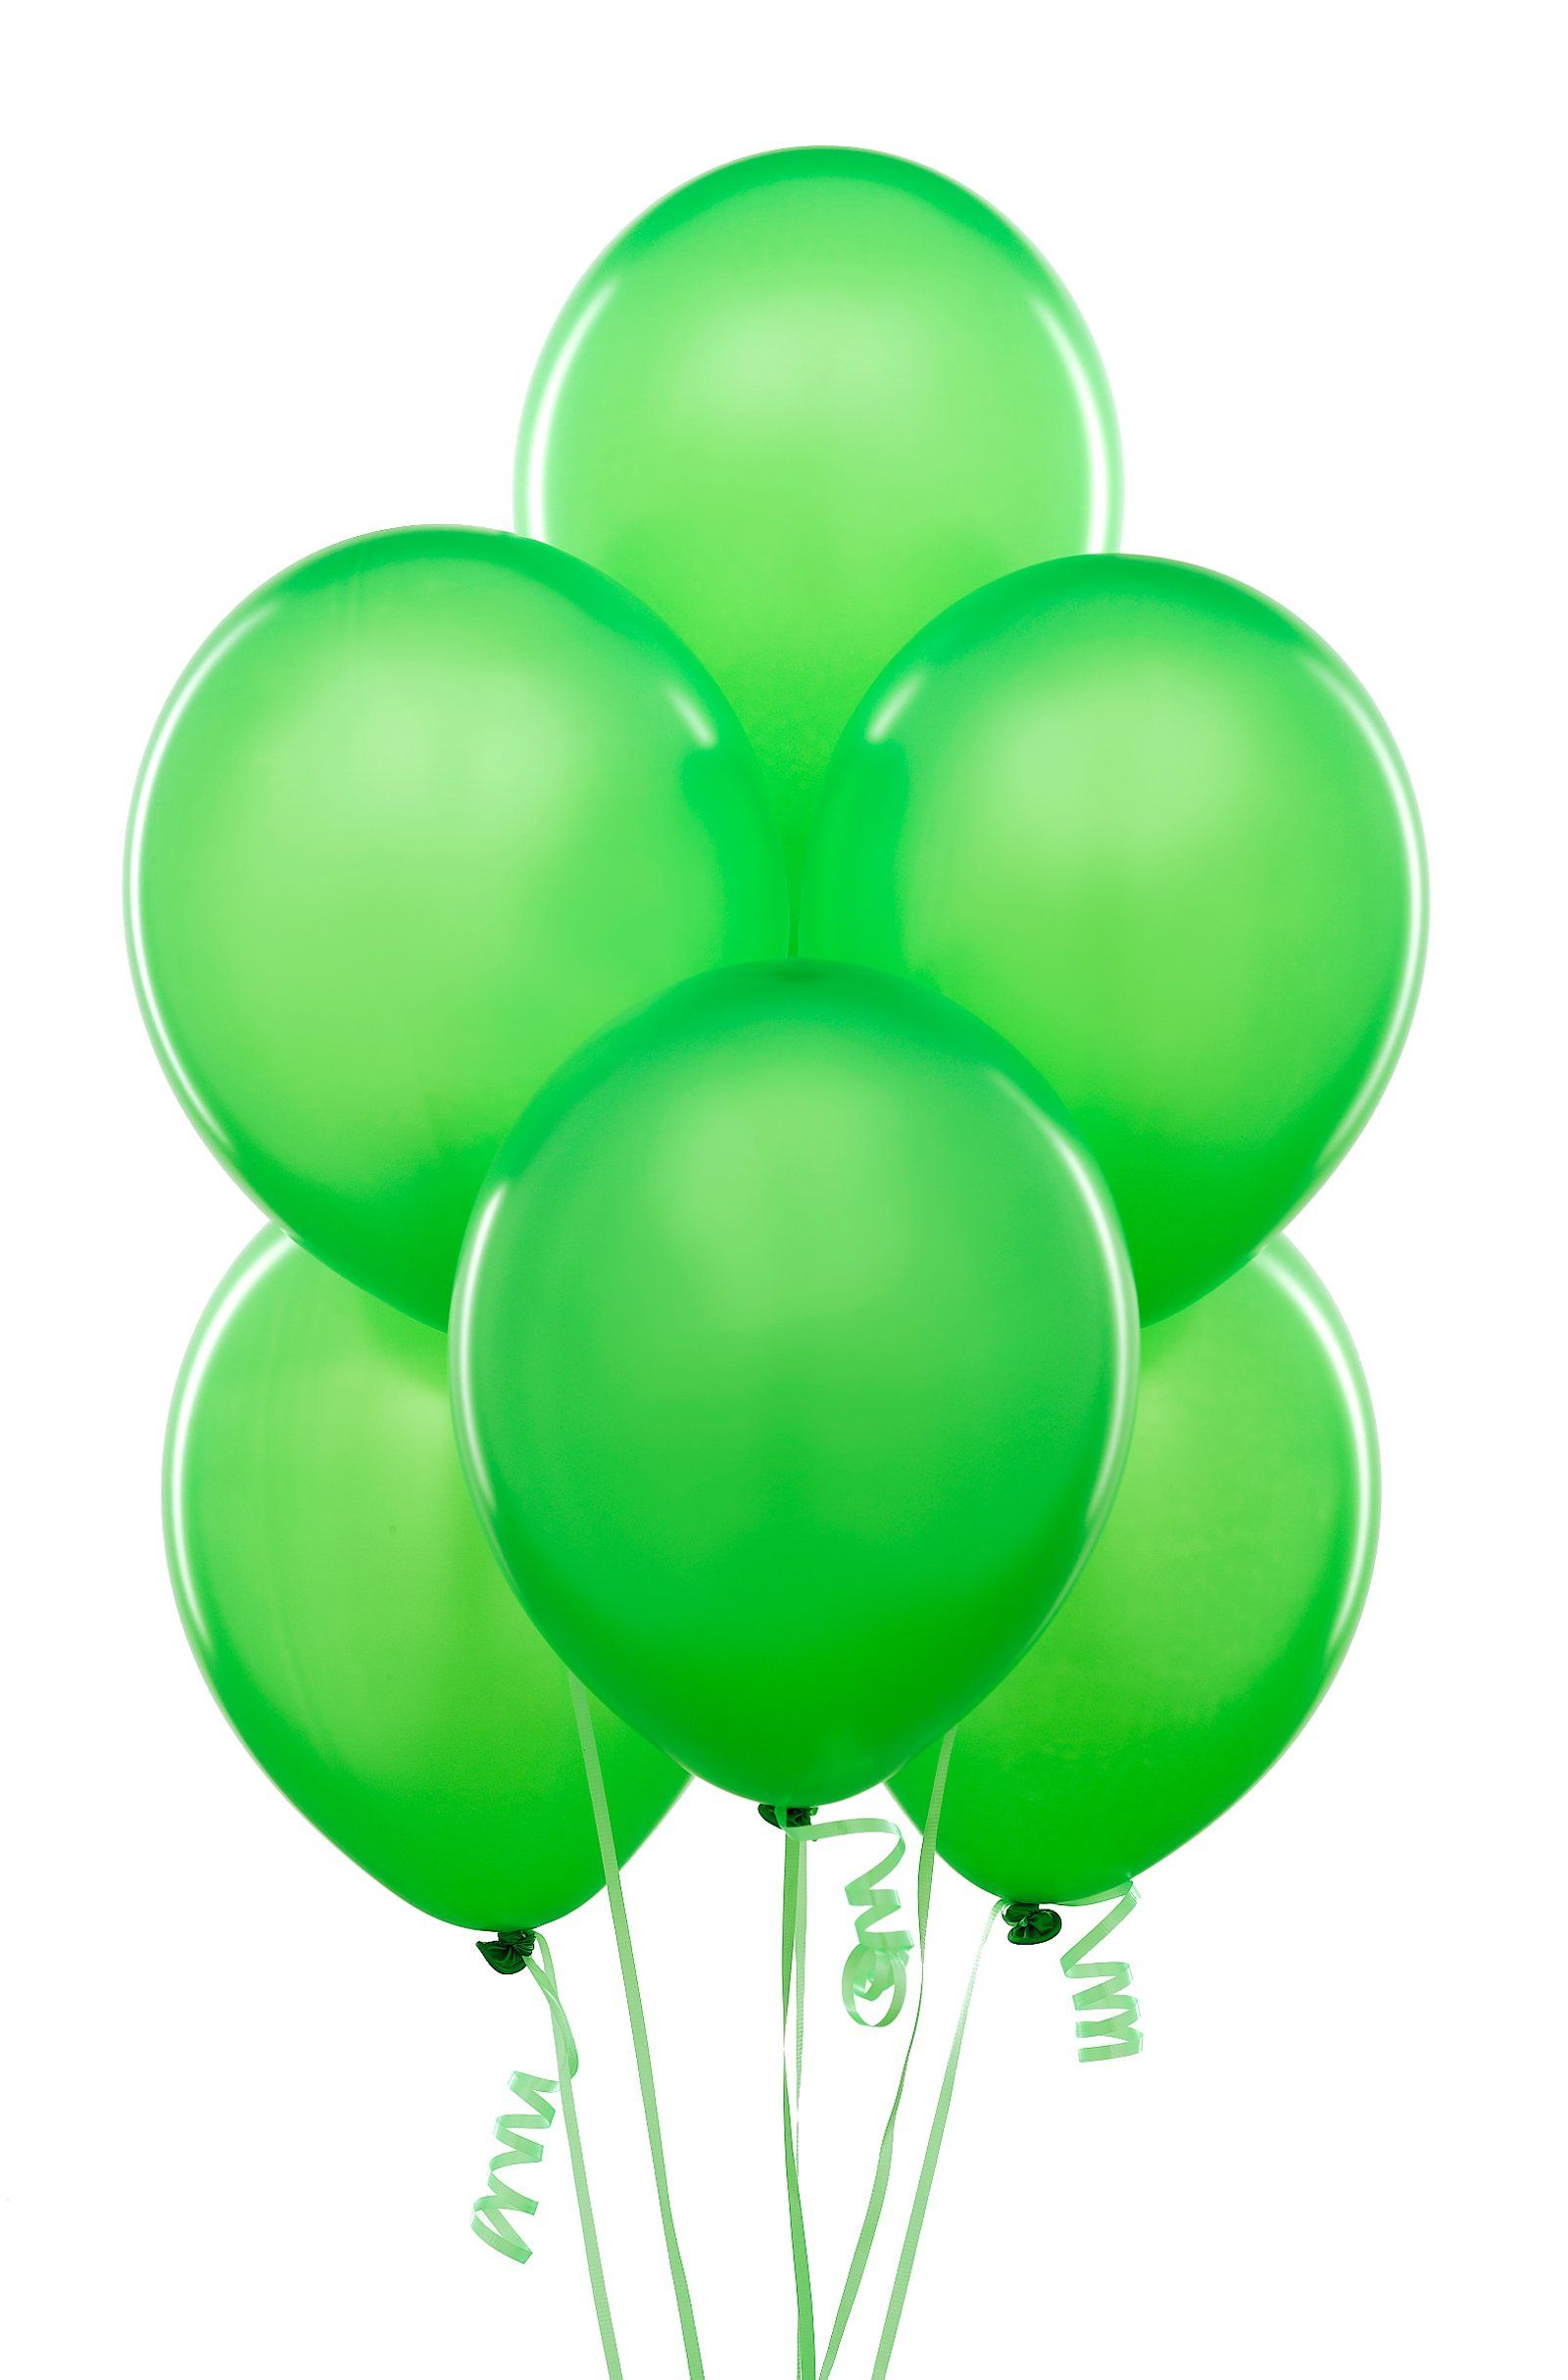 Green and blue balloons - Lime Green Balloons 6 Count